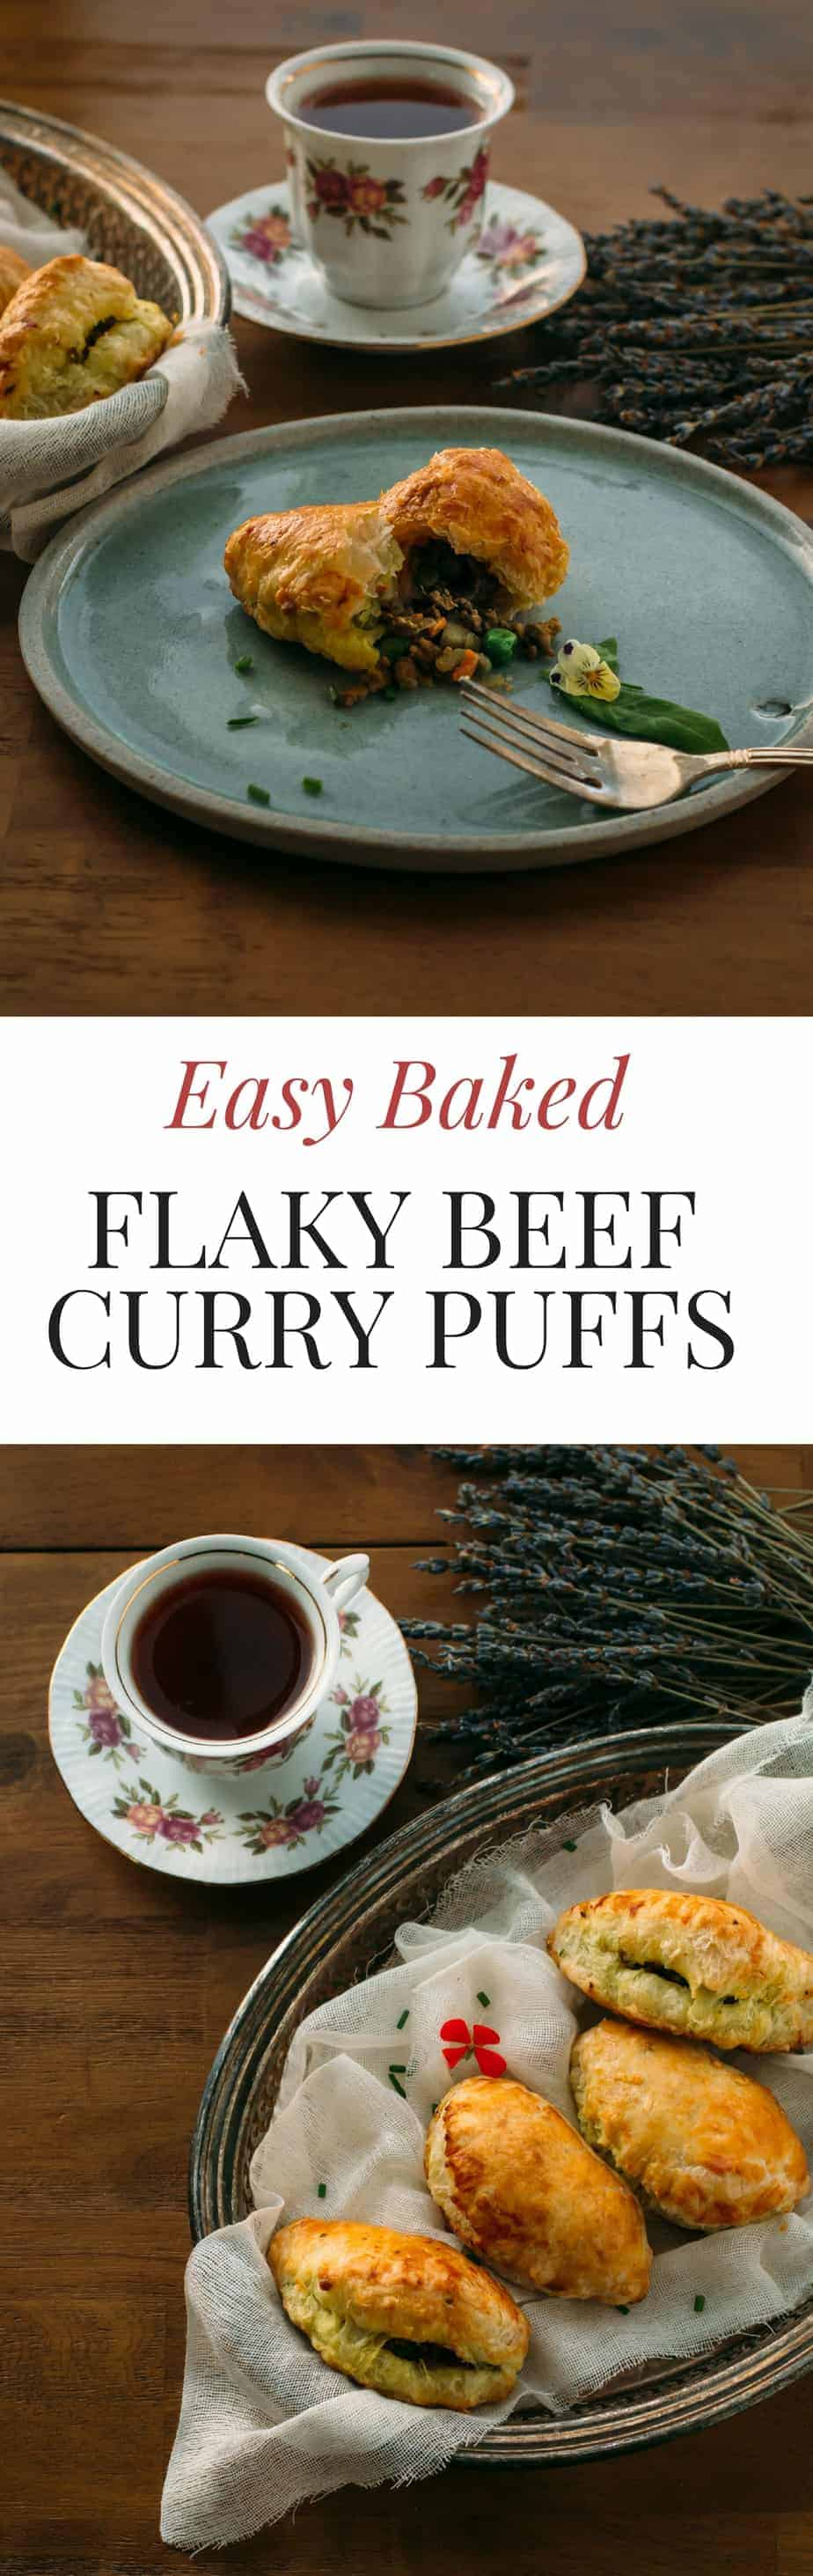 easy baked flaky beef curry puffs